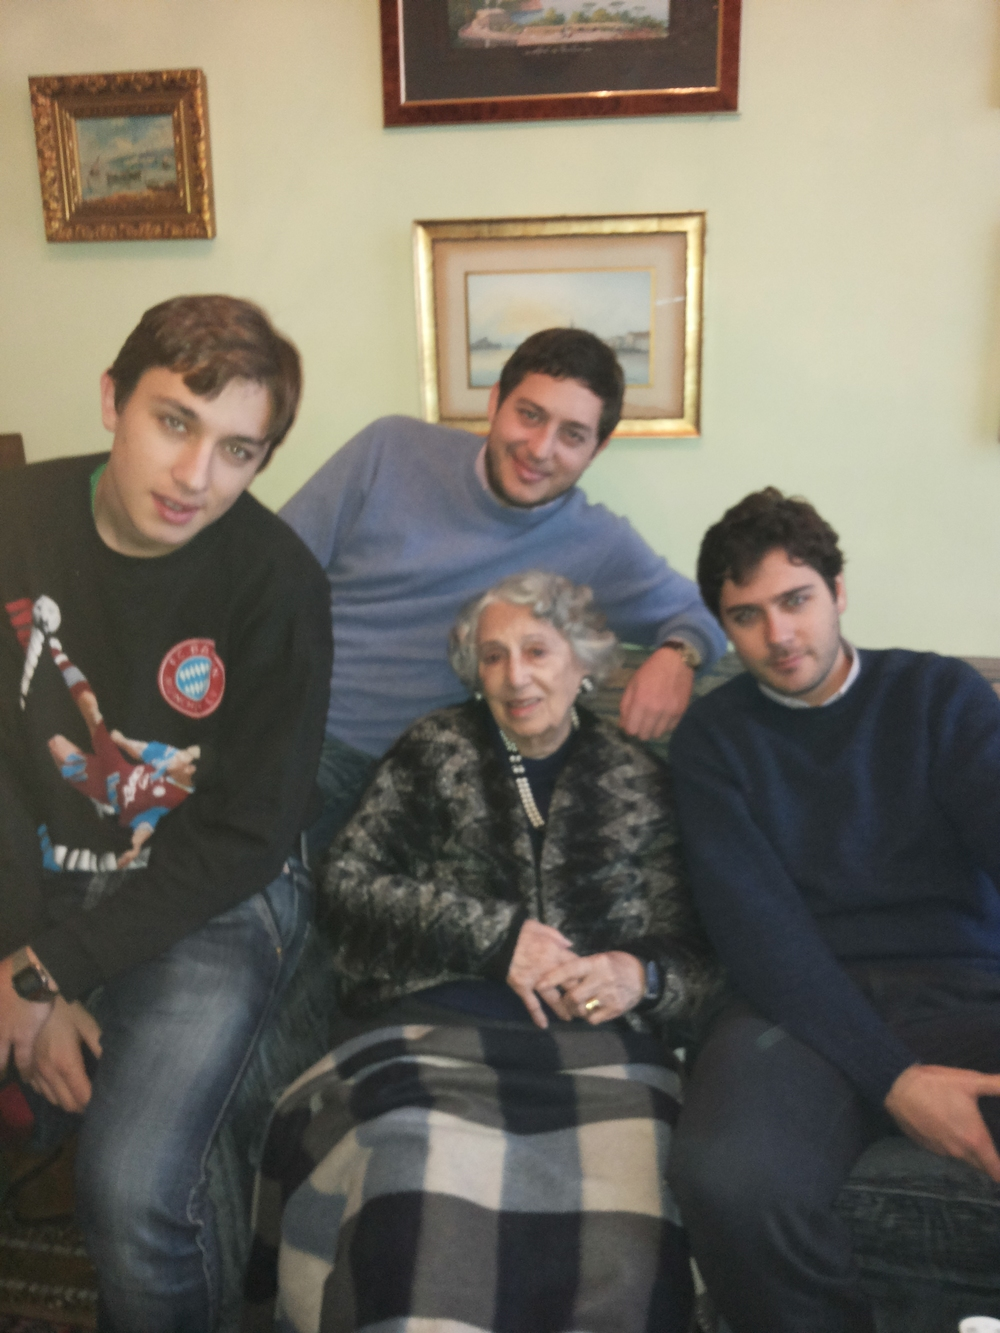 My nonna celebrating her 91st birthday with her three grandsons.